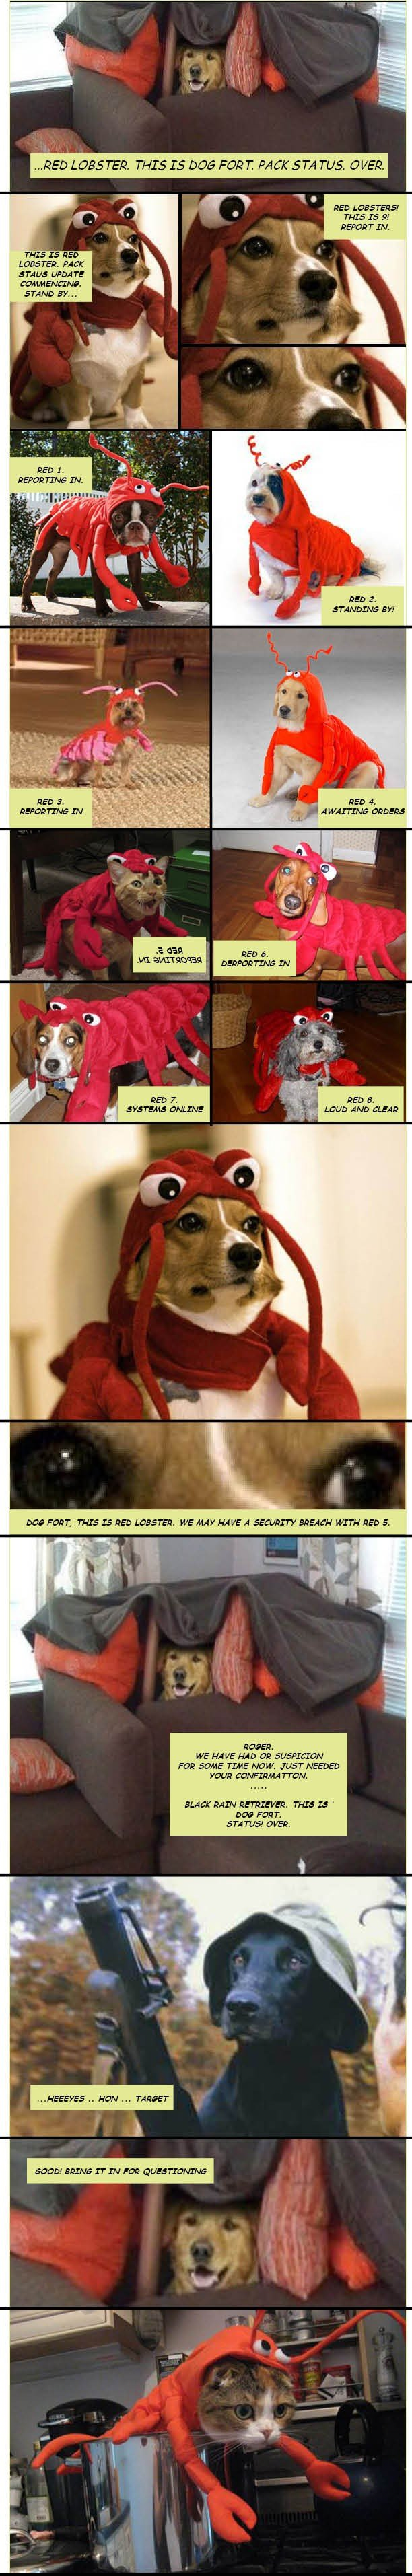 dog fort red lobster security issue